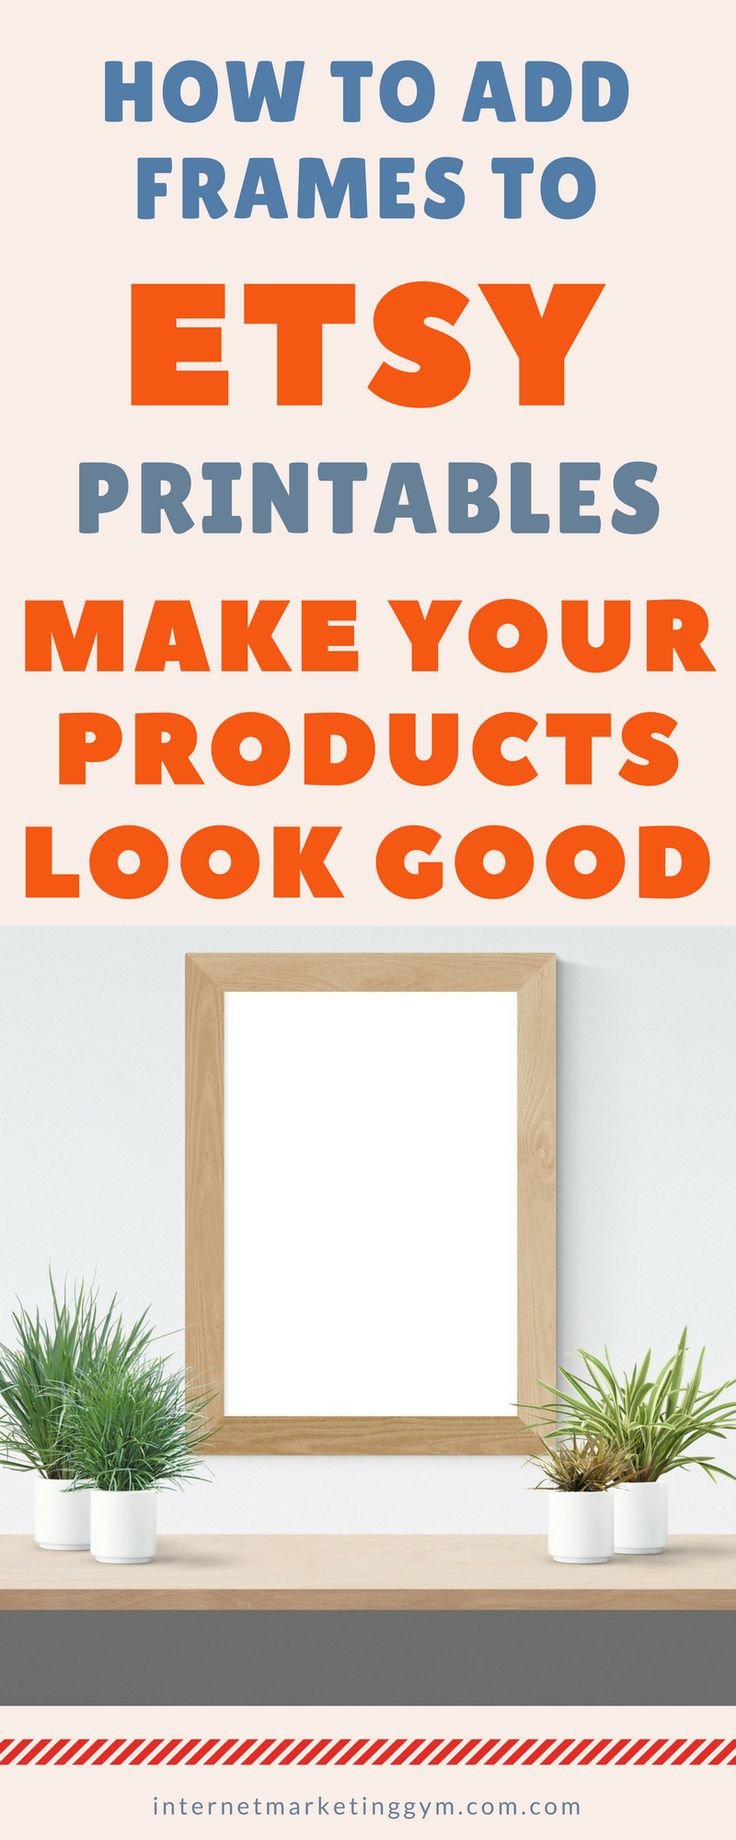 Make money on etsy by improving your digital products look and feel with frames. In this guide I show you exactly how to add frames around your digital Etsy printables, quotes and other goods. #Etsy #MakemoneyOnline #Printables